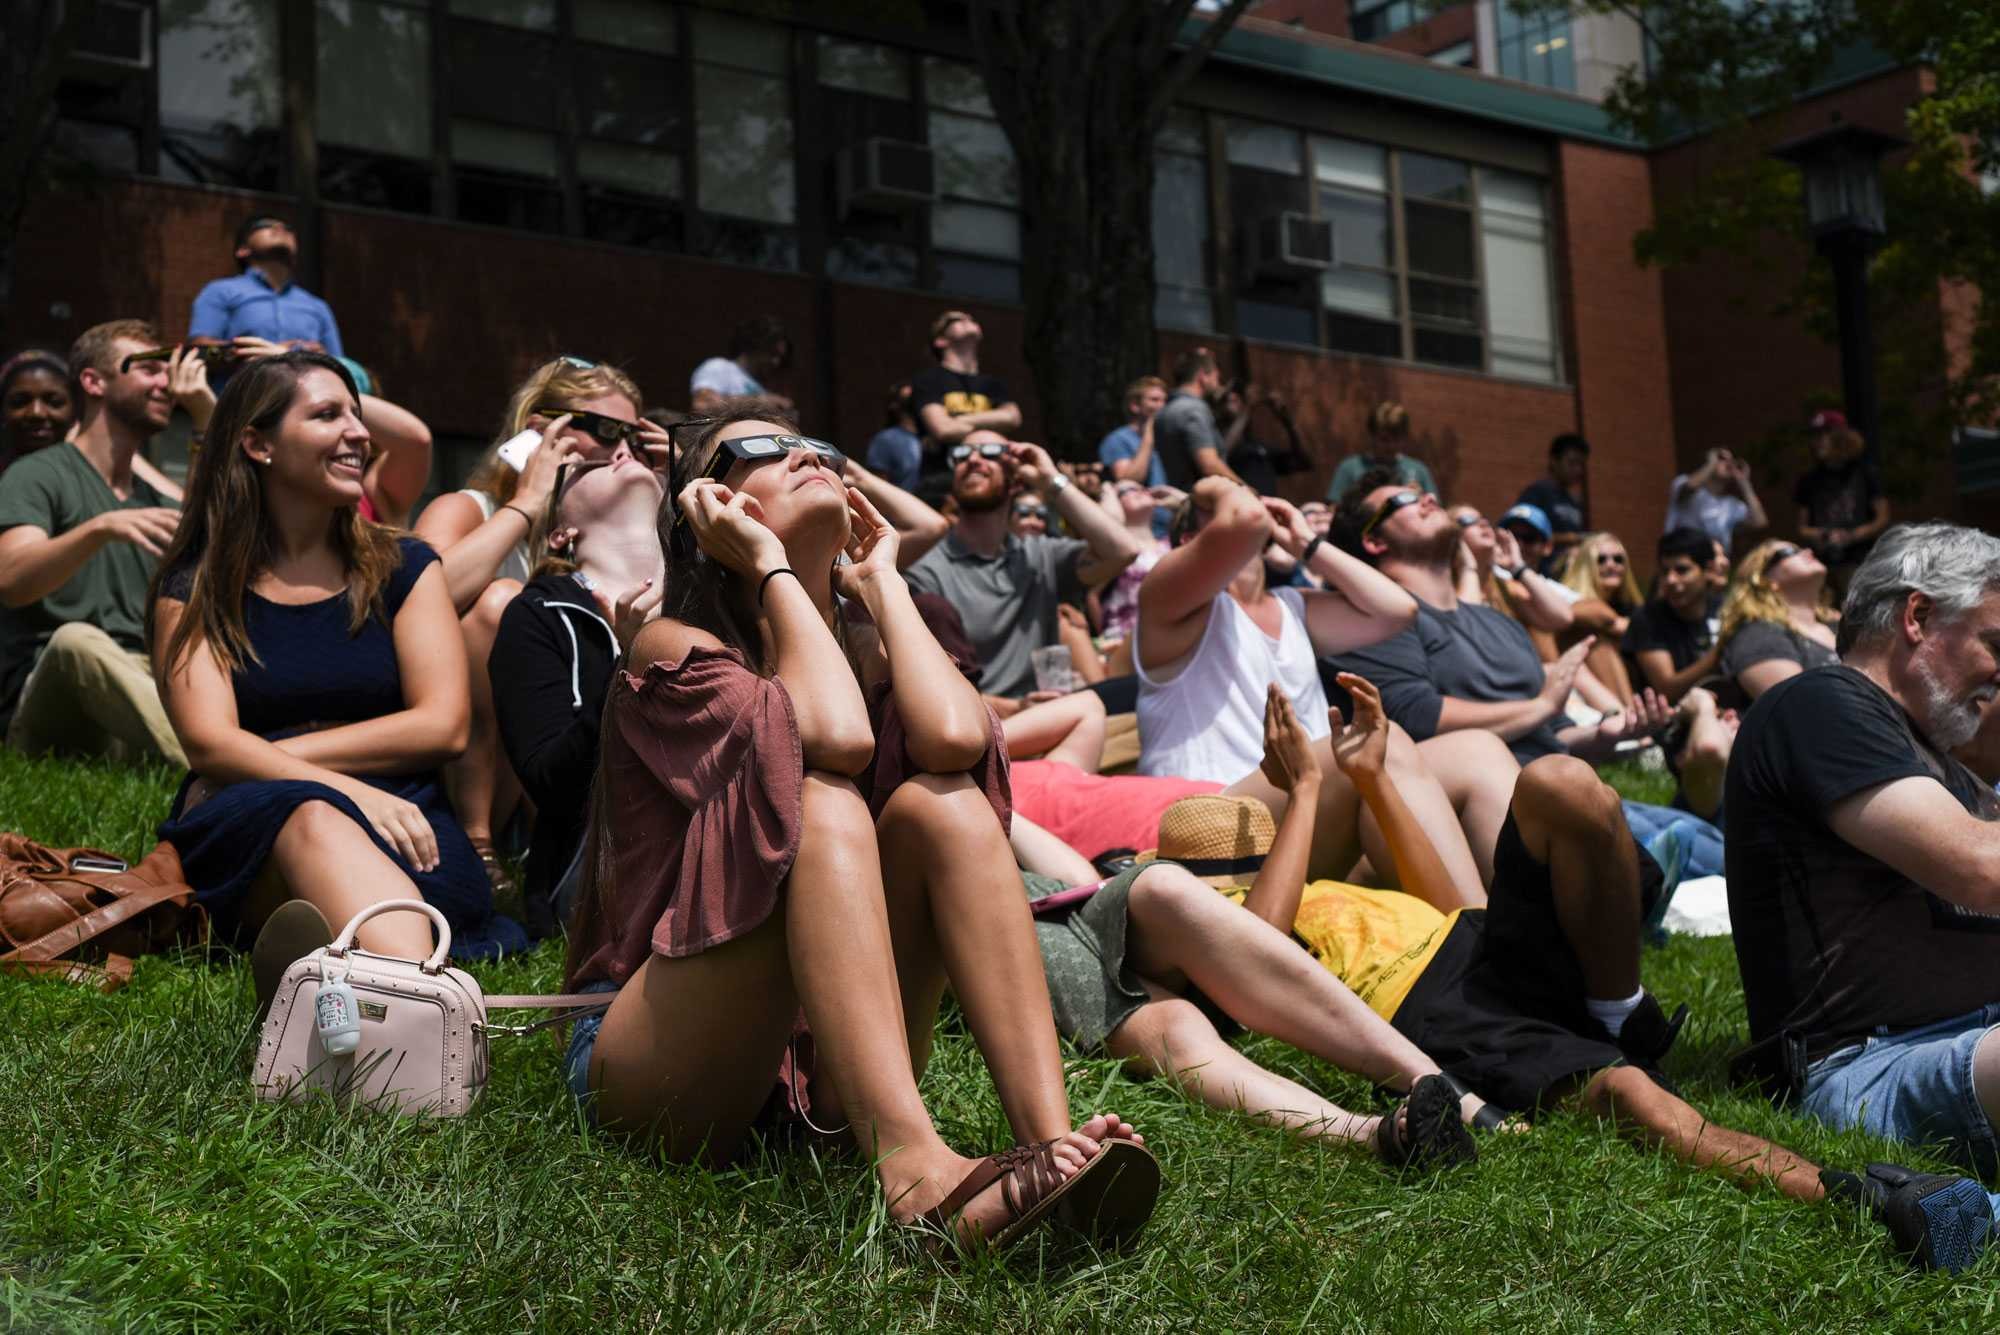 Eclipse stokes interest in astronomy